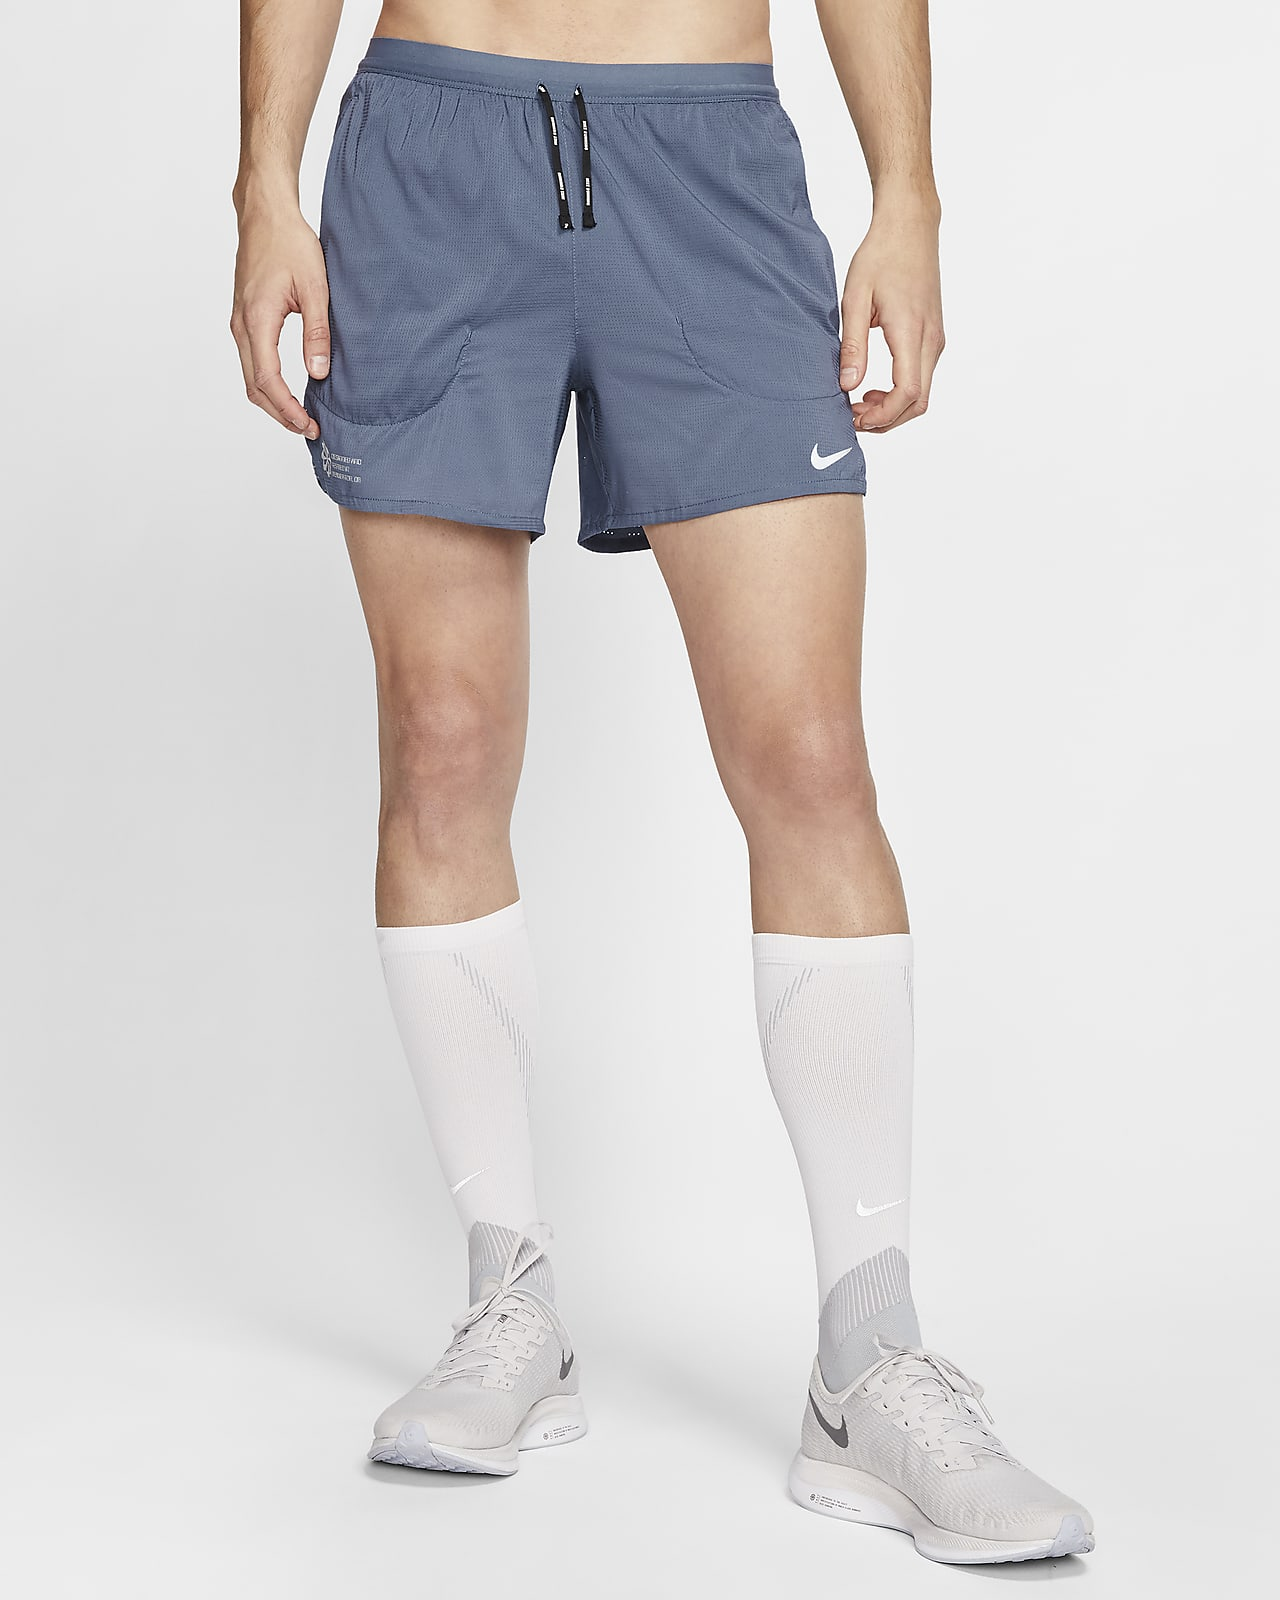 Nike Flex Stride Future Fast Men's 13cm (approx.) Brief-Lined Running Shorts